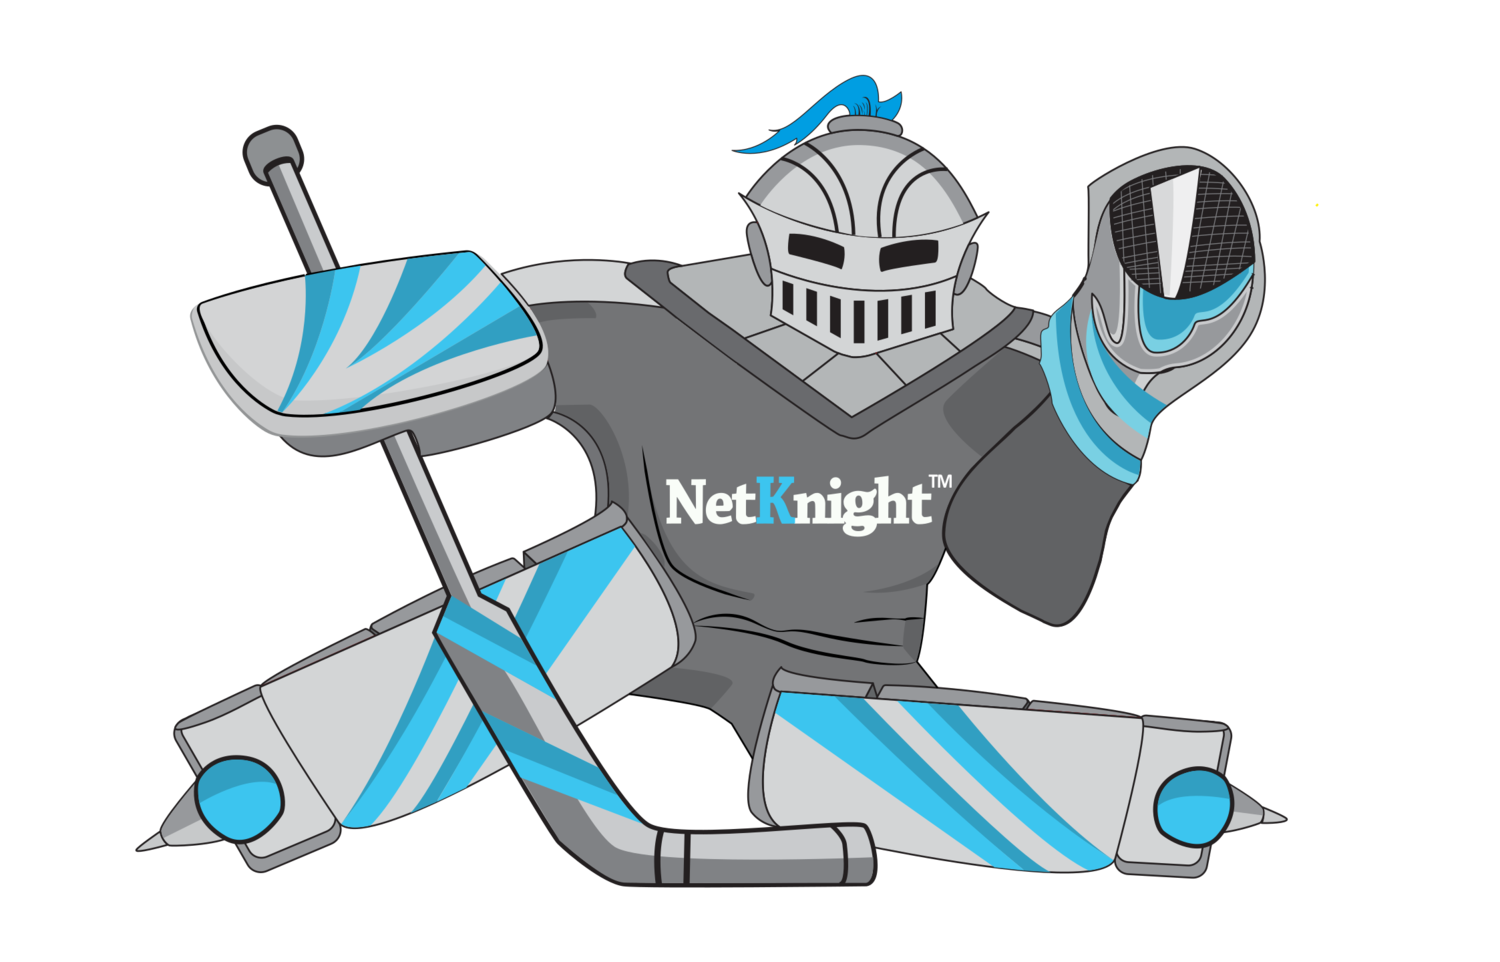 NetKnight ShooterTutor